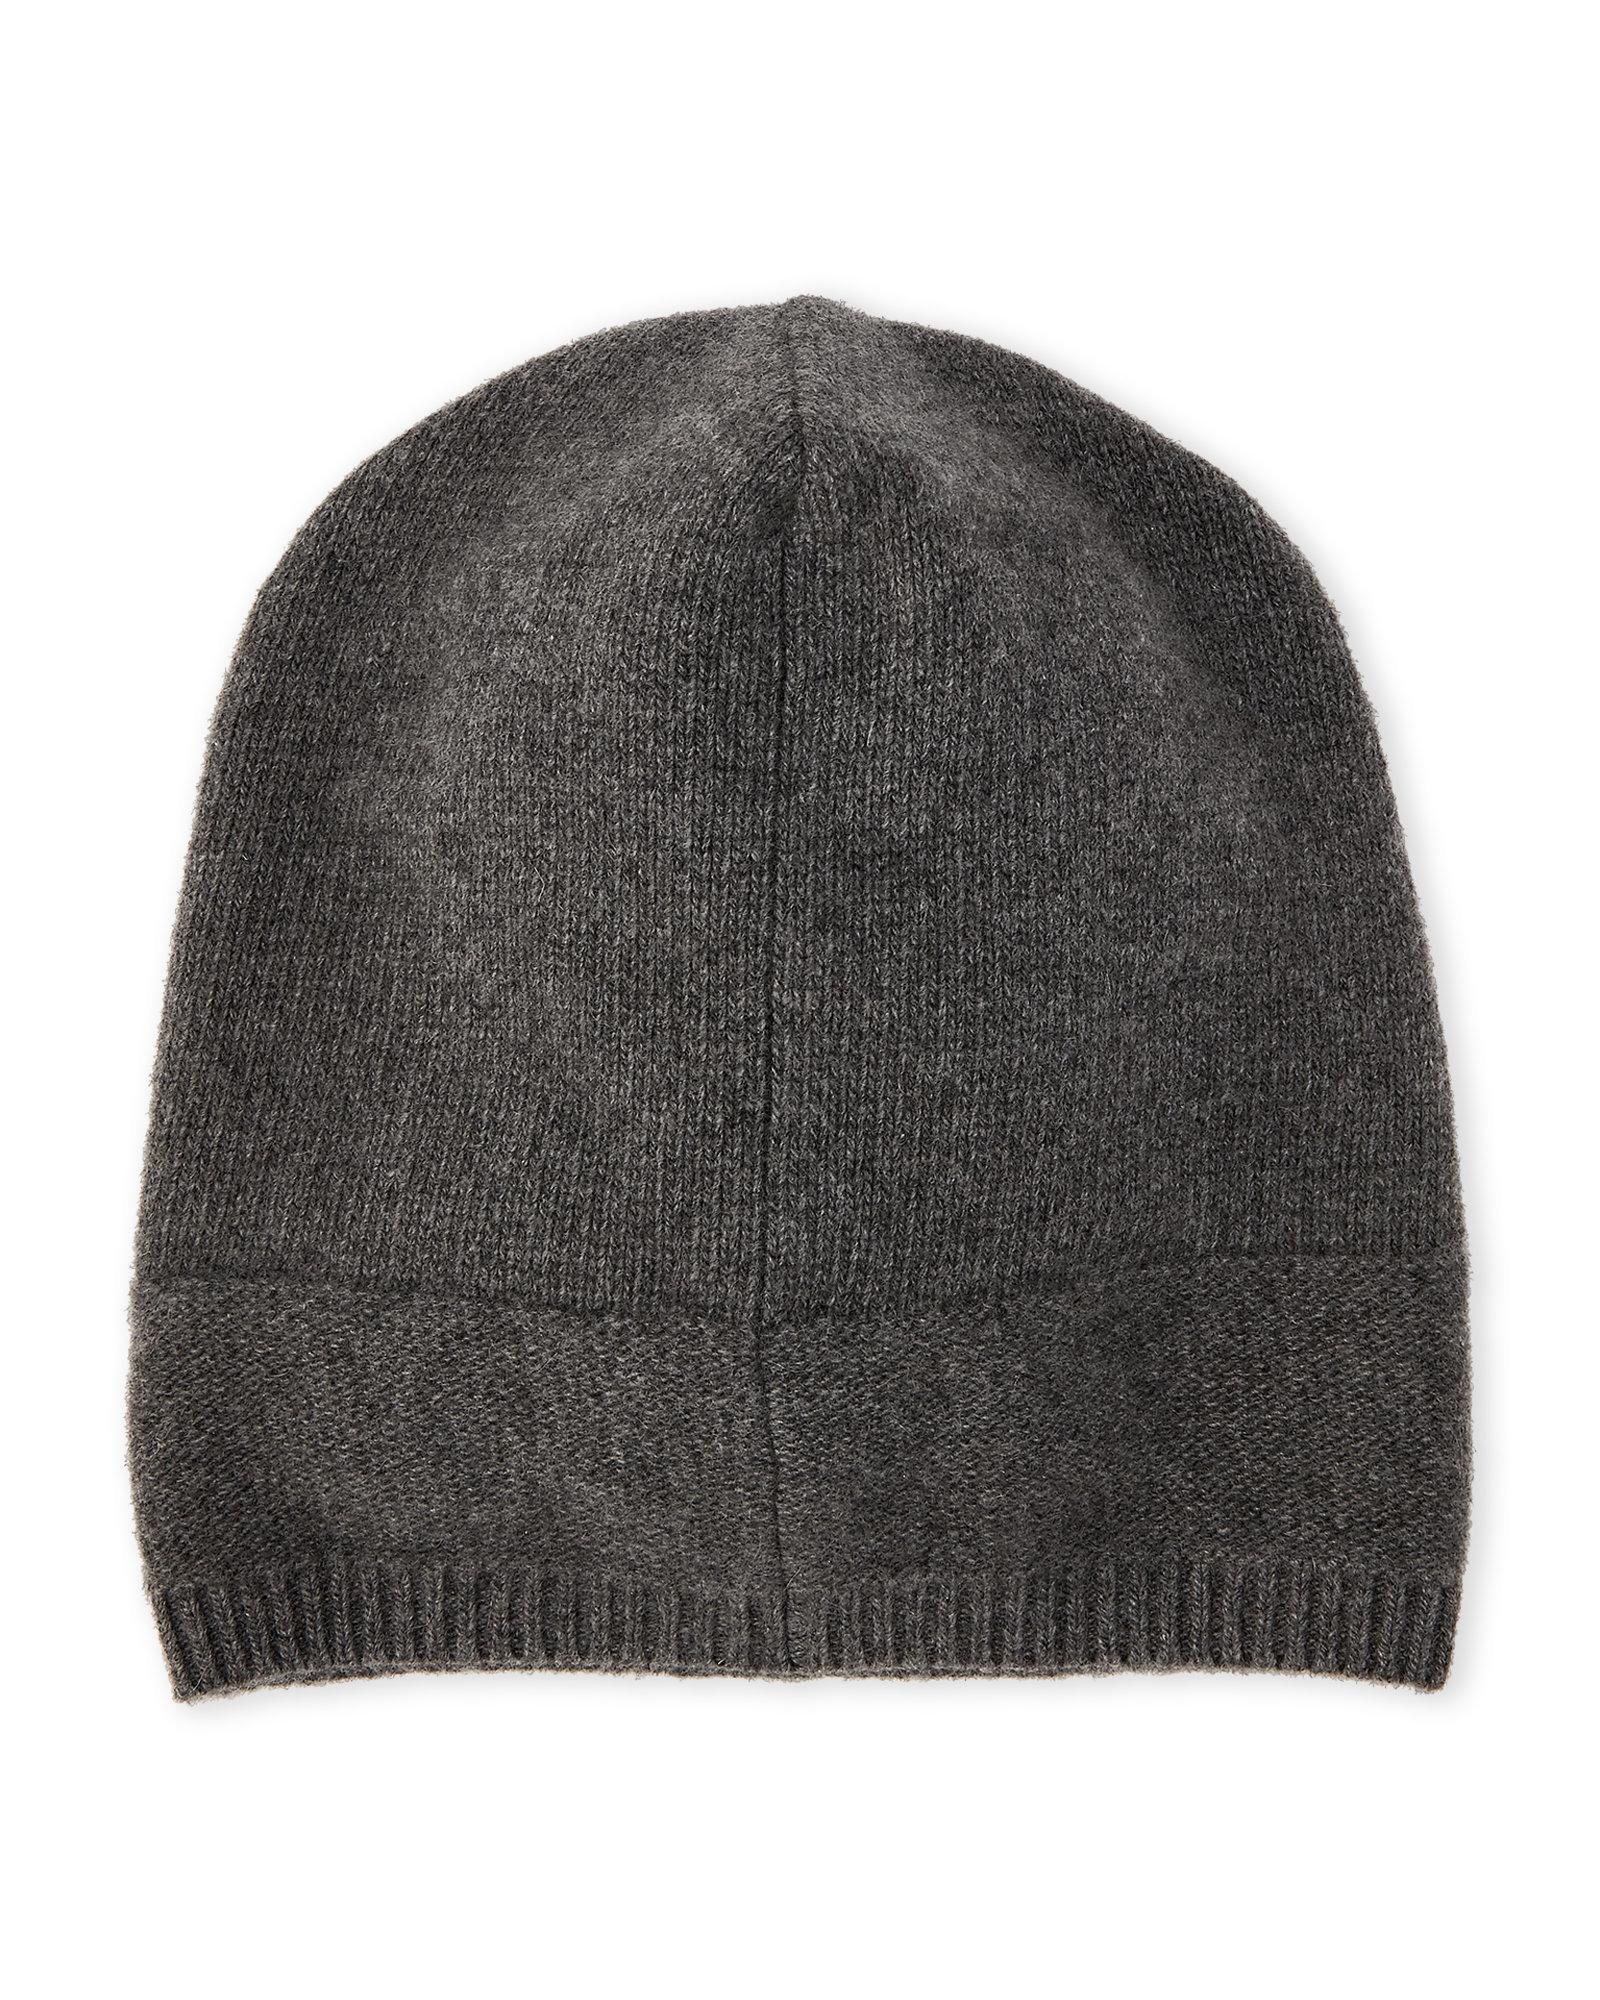 Lyst - Portolano Solid Slouchy Cashmere Beanie in Gray for Men ac835a75c382